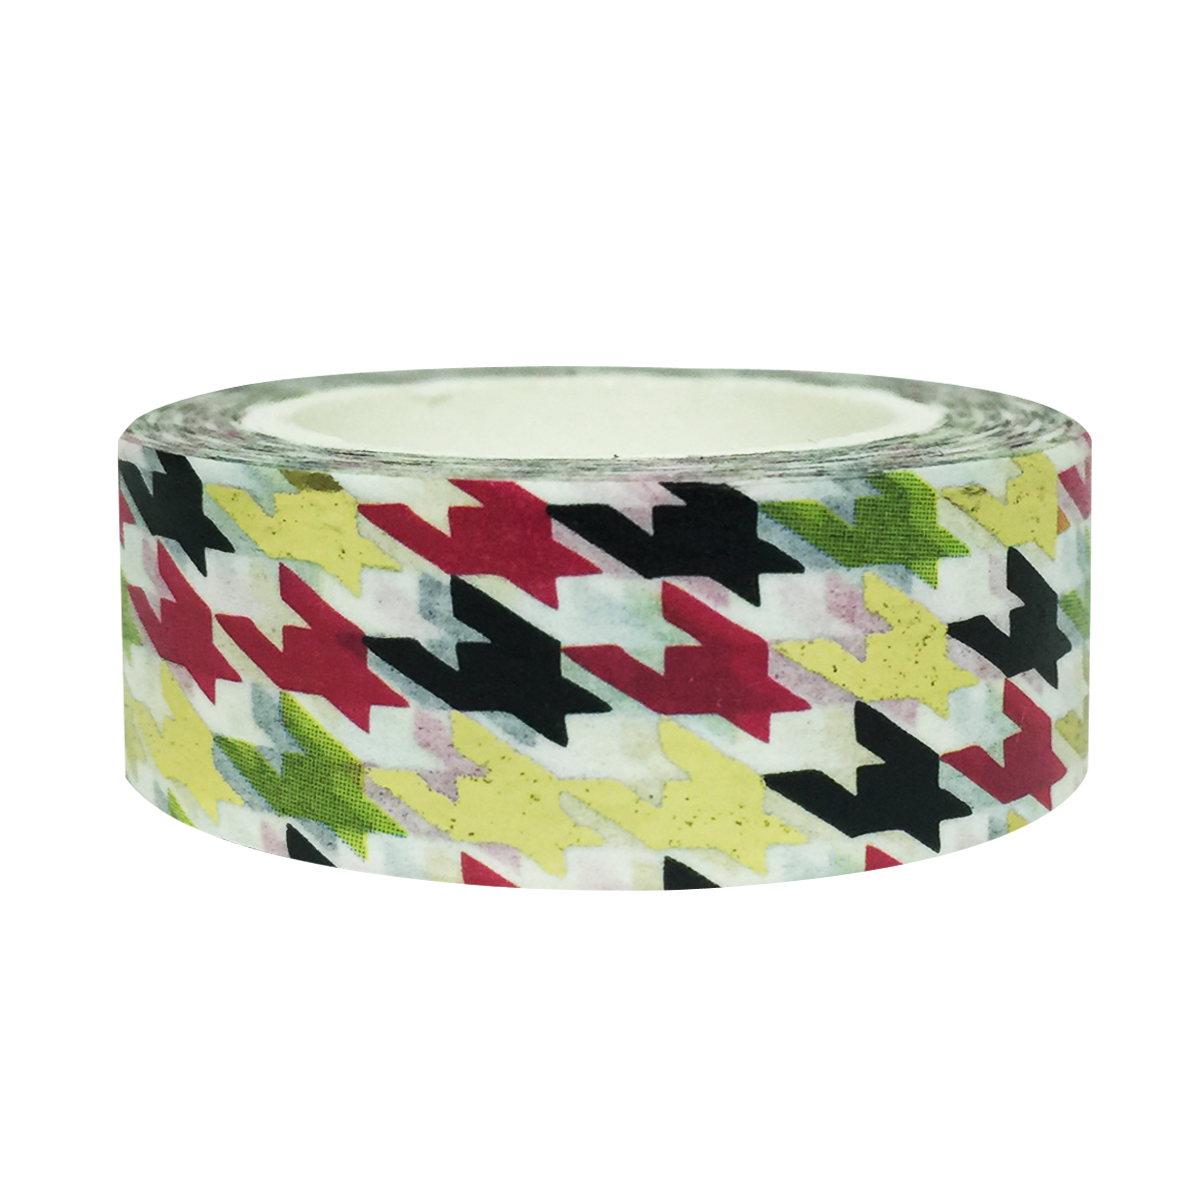 Wrapables® Colorful Washi Masking Tape, Digital Houndstooth